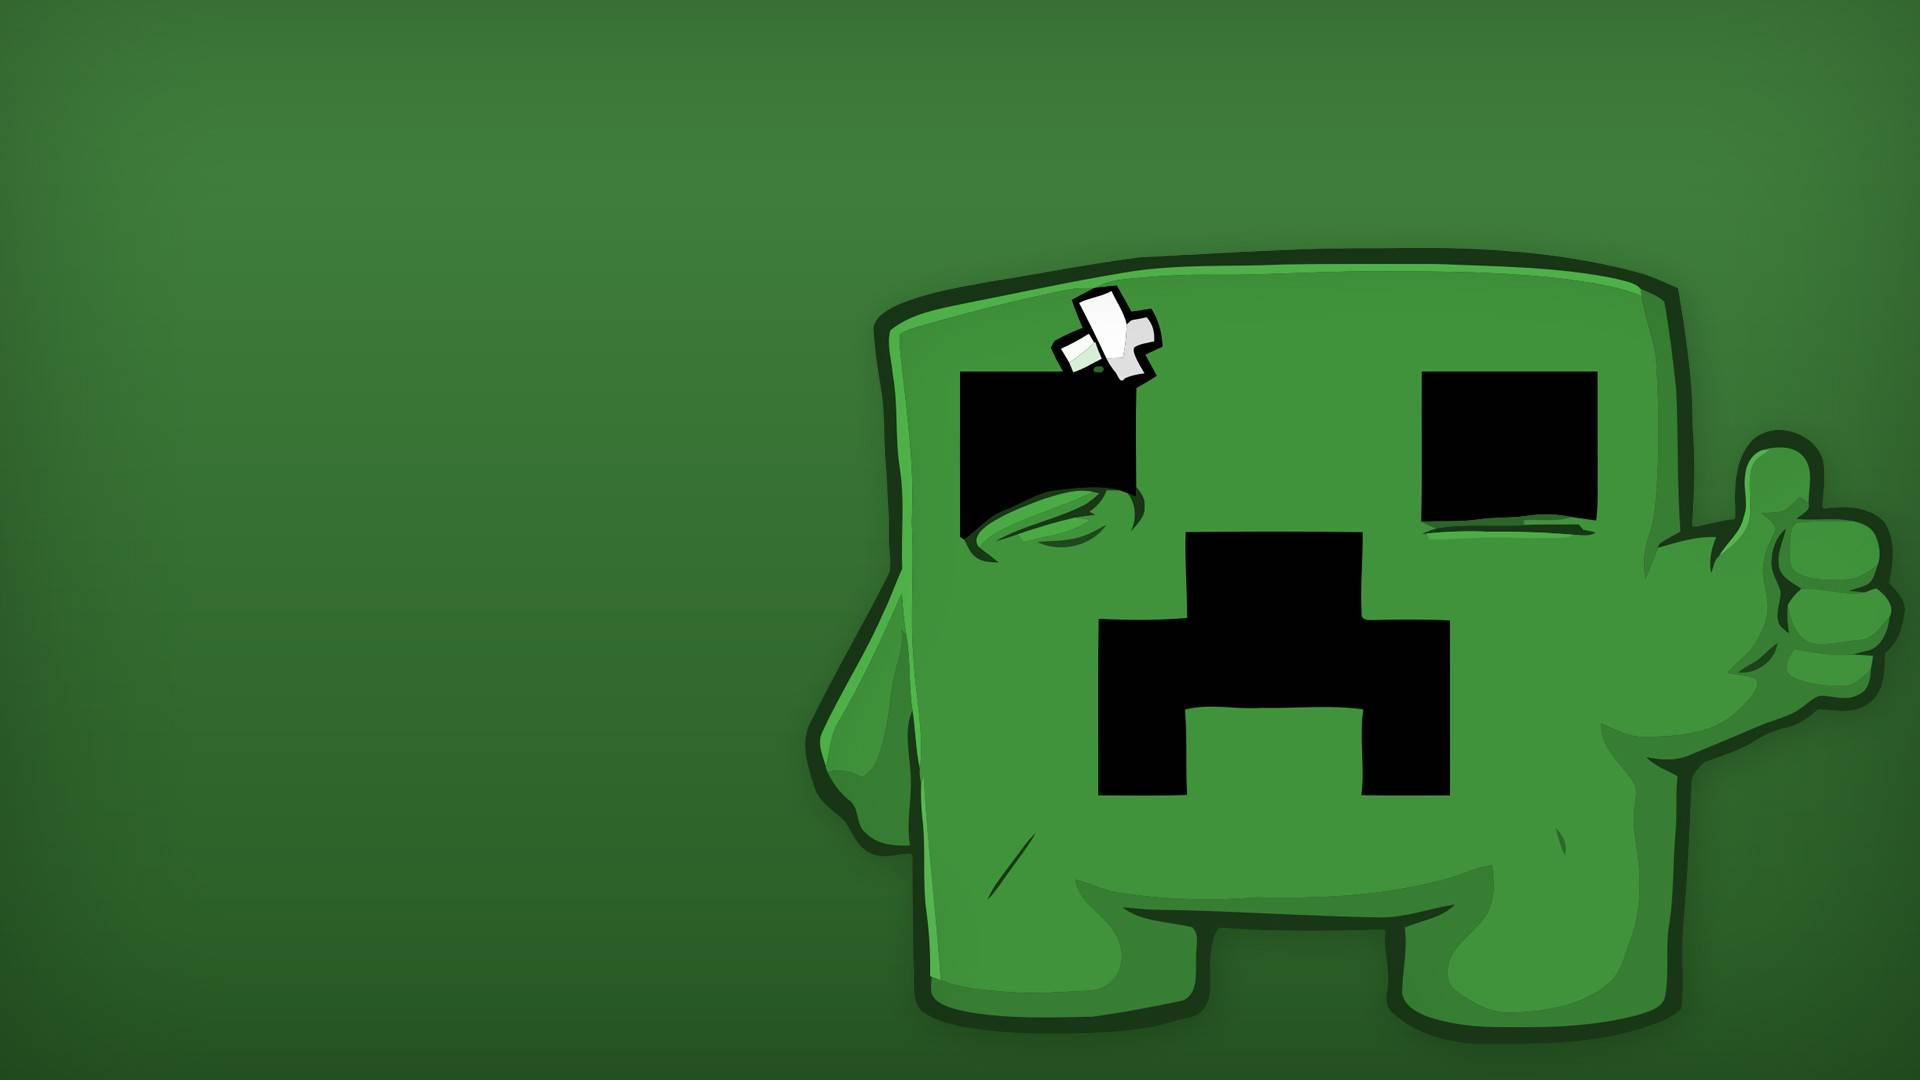 cute-creeper-minecraft-wallpaper-20141010040533-54375b0d4e46c